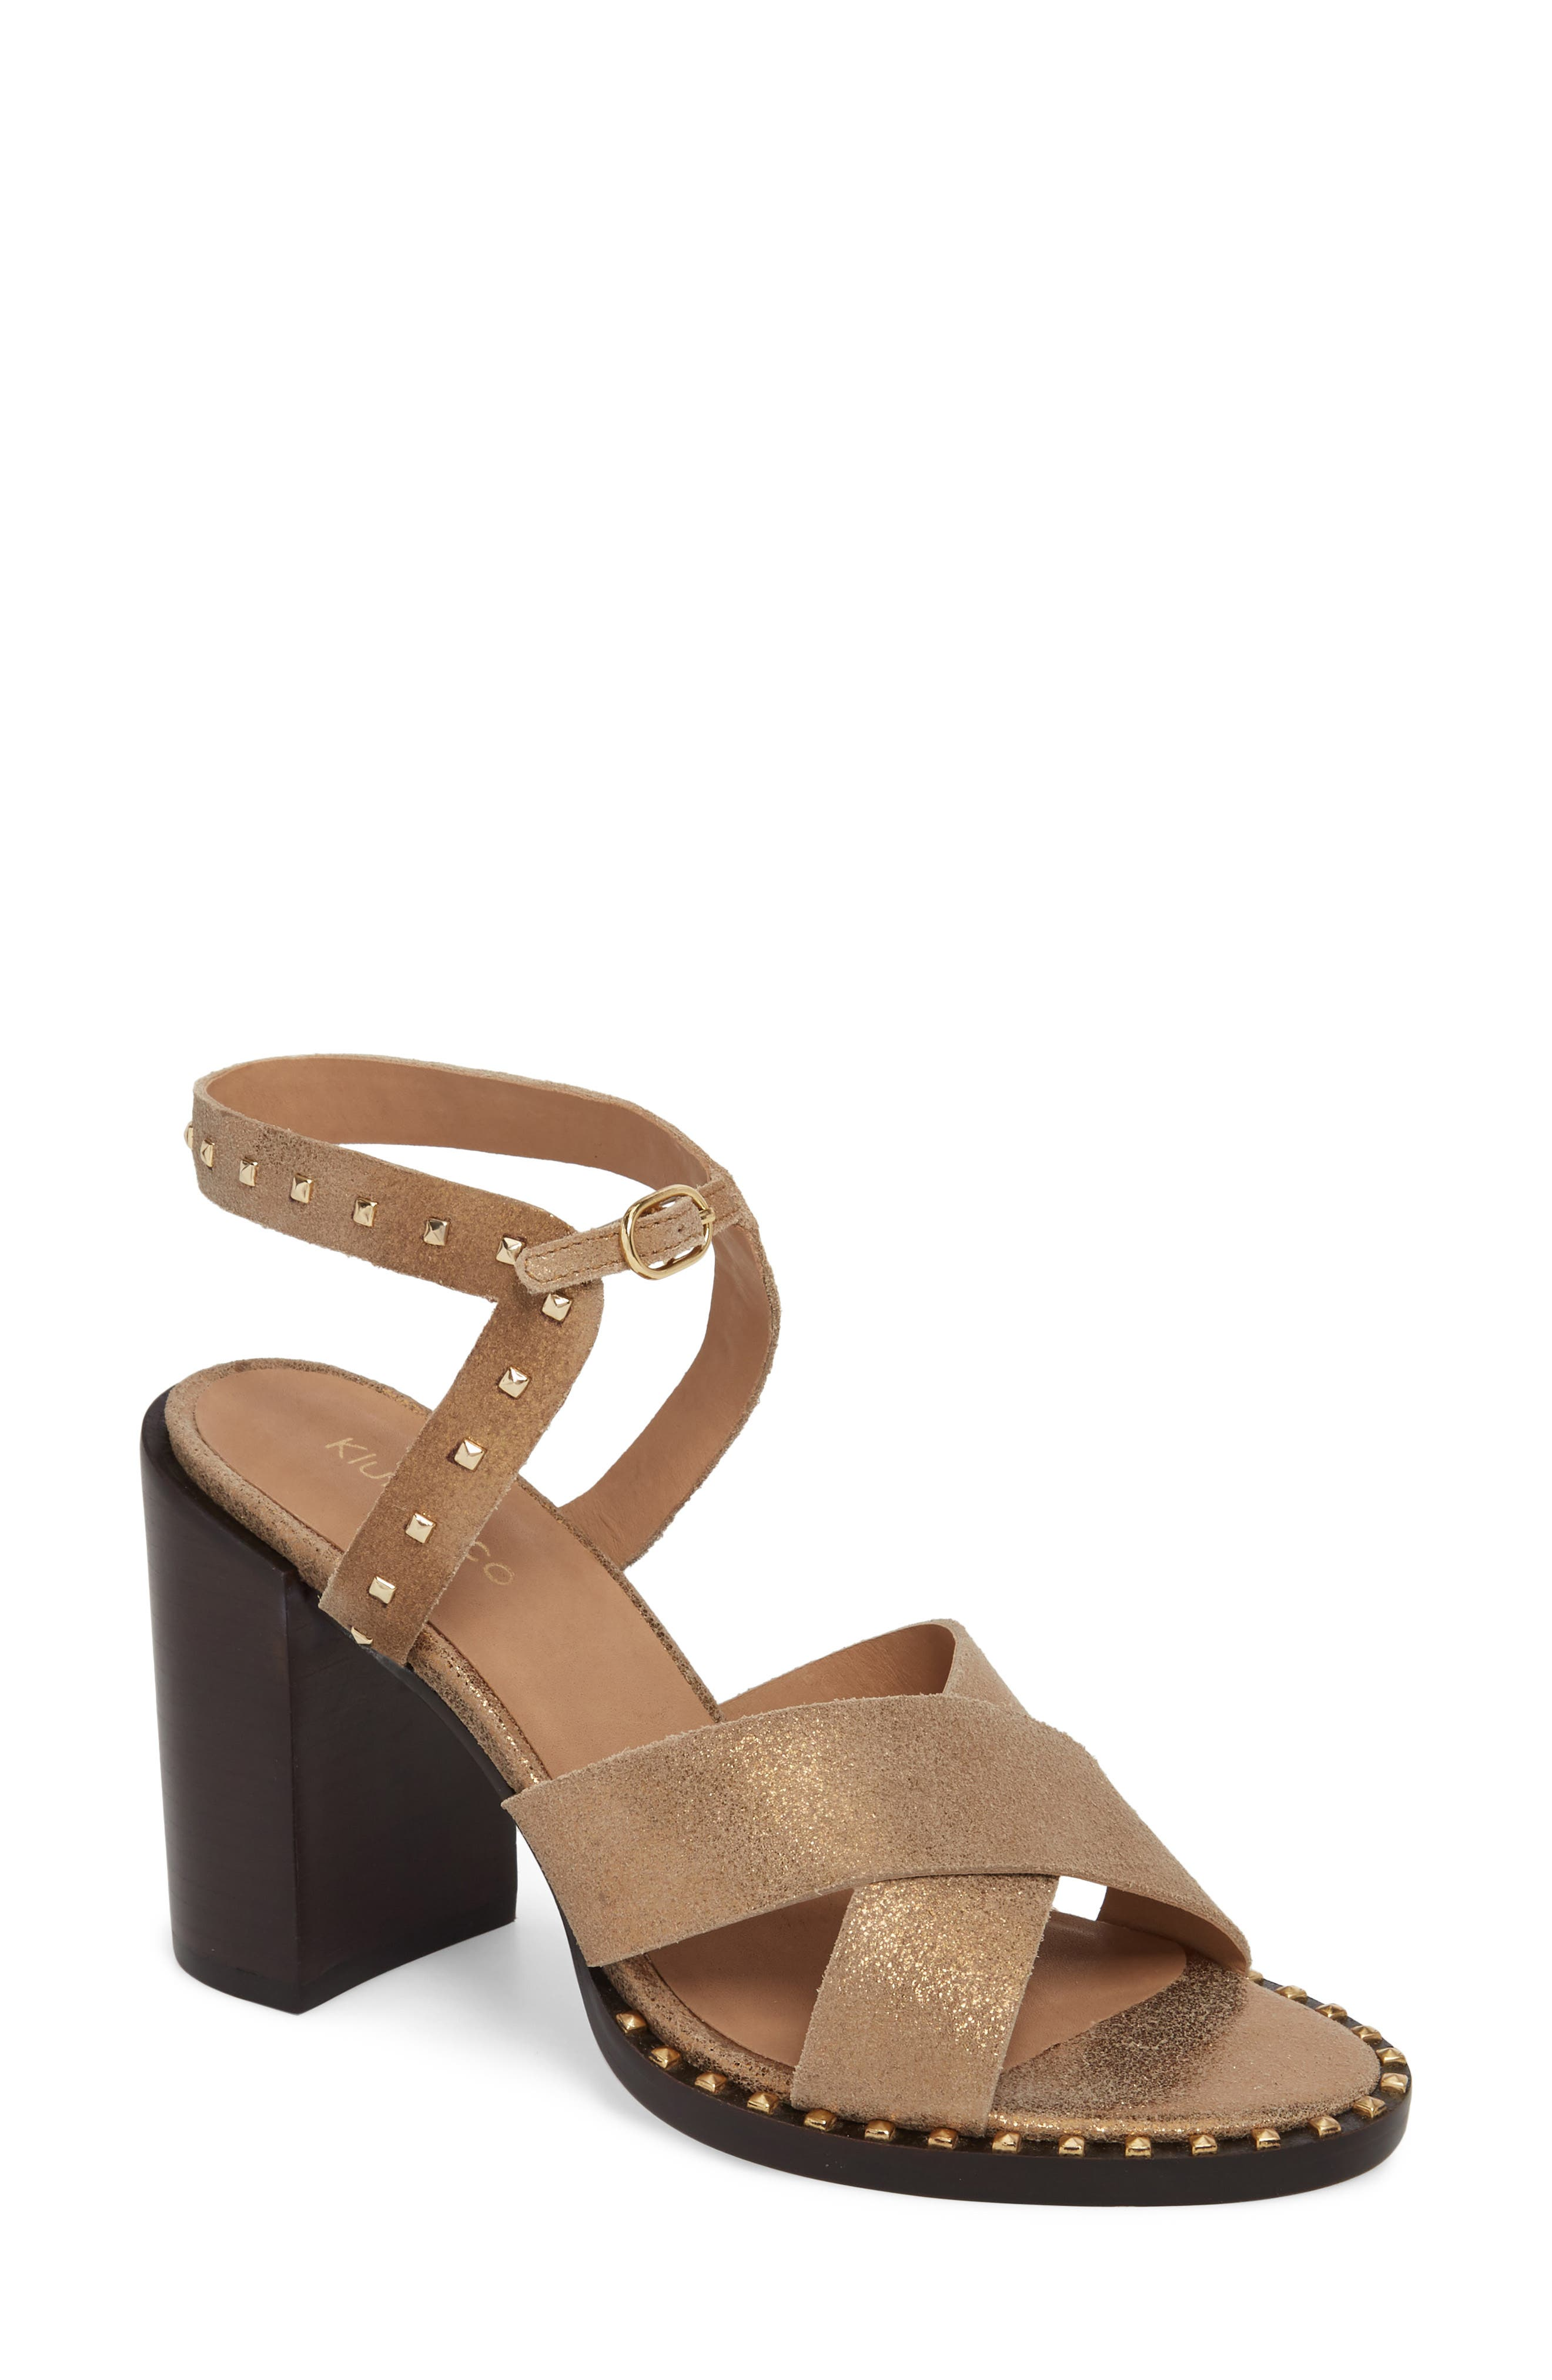 Tabia Sandal,                             Main thumbnail 1, color,                             Bronze Suede